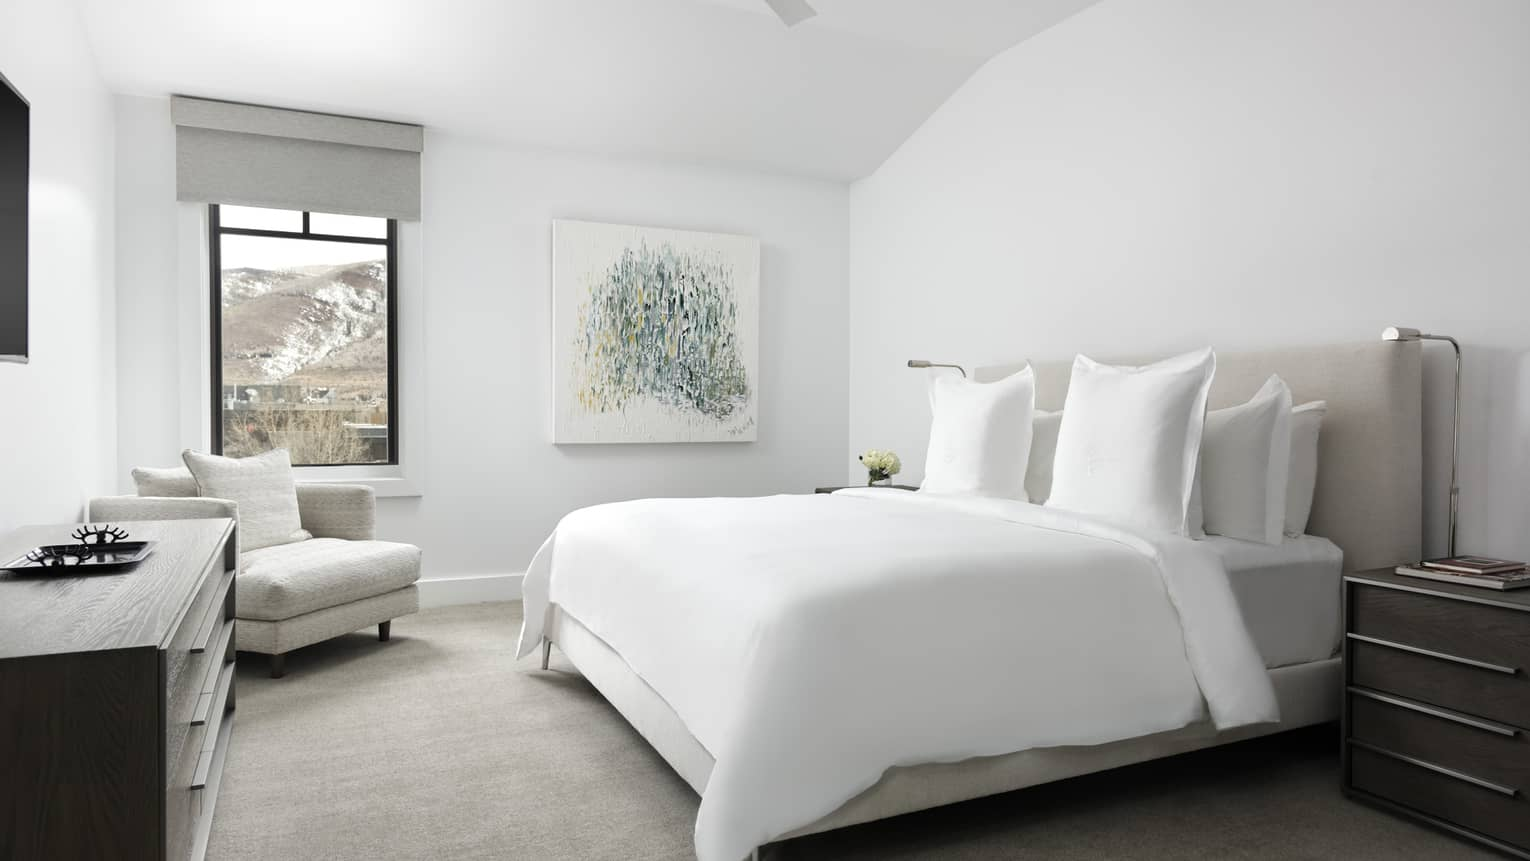 Bedroom with white walls, white king bed, light grey arm chair, dresser, window